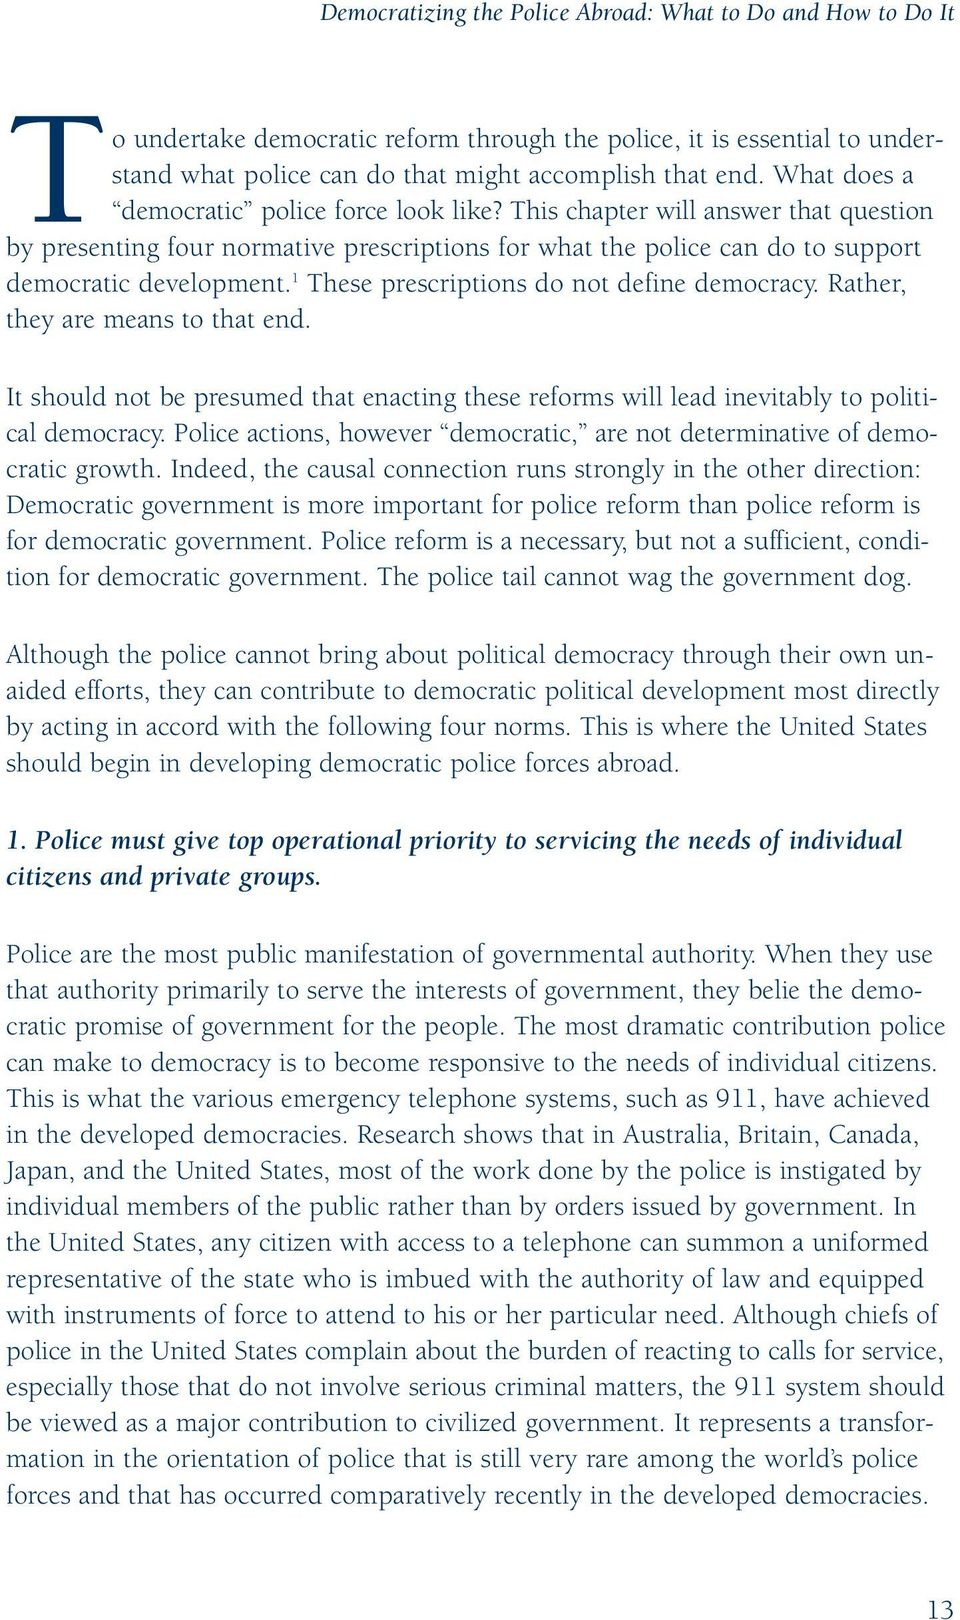 1 These prescriptions do not define democracy. Rather, they are means to that end. It should not be presumed that enacting these reforms will lead inevitably to political democracy.